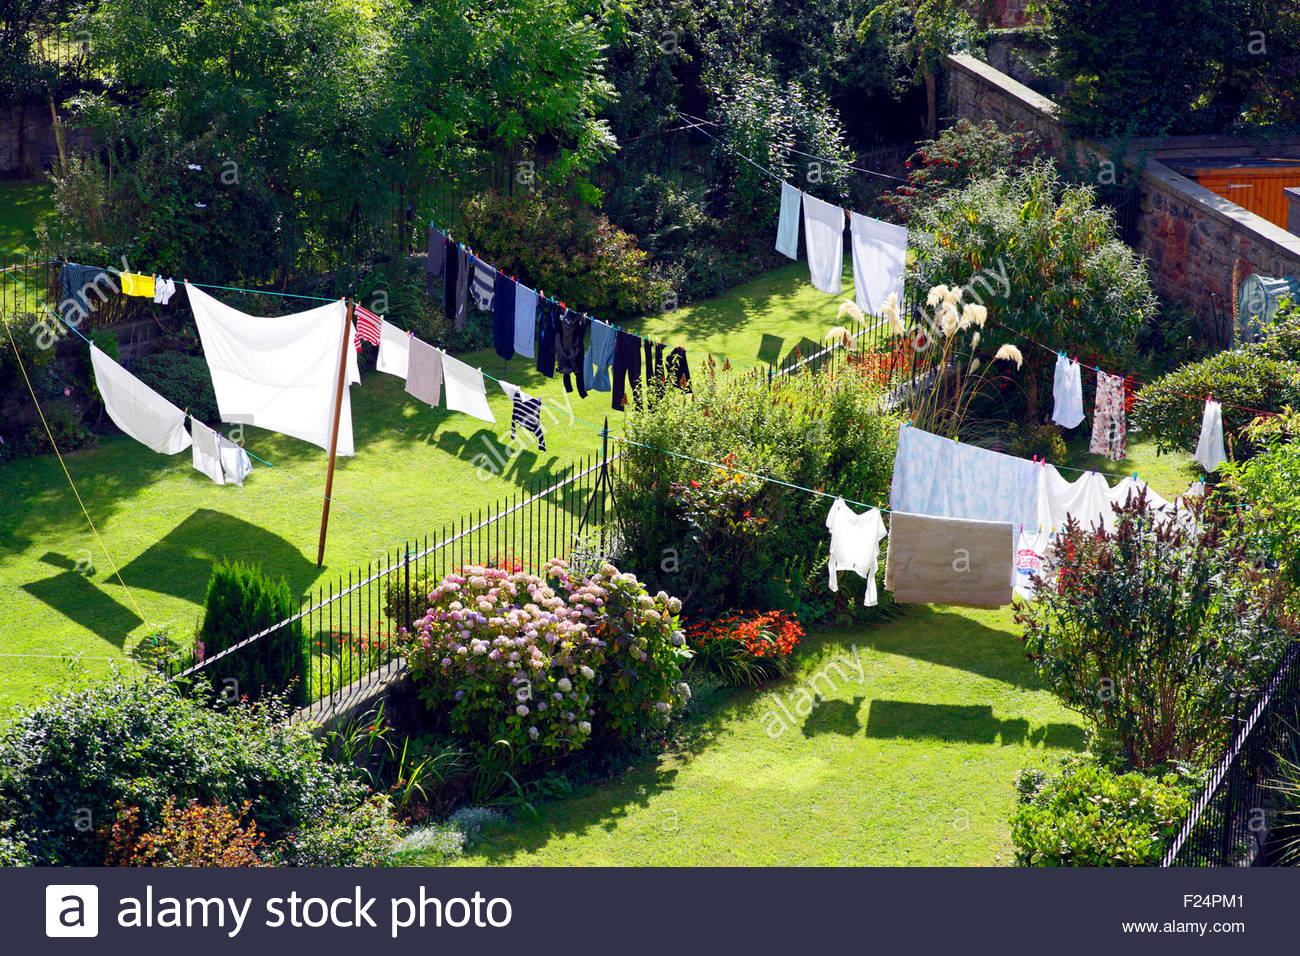 Sweet Back Gardens Stock Photos  Back Gardens Stock Images  Alamy With Entrancing Washing Line Clothes Drying In Suburban Back Gardens  Stock Image With Breathtaking Garden Front Also Garden Wall Ideas Design In Addition Fencing For Gardens And Watch The Constant Gardener Online As Well As Walled Garden Design Ideas Additionally Gardens In Wicklow From Alamycom With   Entrancing Back Gardens Stock Photos  Back Gardens Stock Images  Alamy With Breathtaking Washing Line Clothes Drying In Suburban Back Gardens  Stock Image And Sweet Garden Front Also Garden Wall Ideas Design In Addition Fencing For Gardens From Alamycom